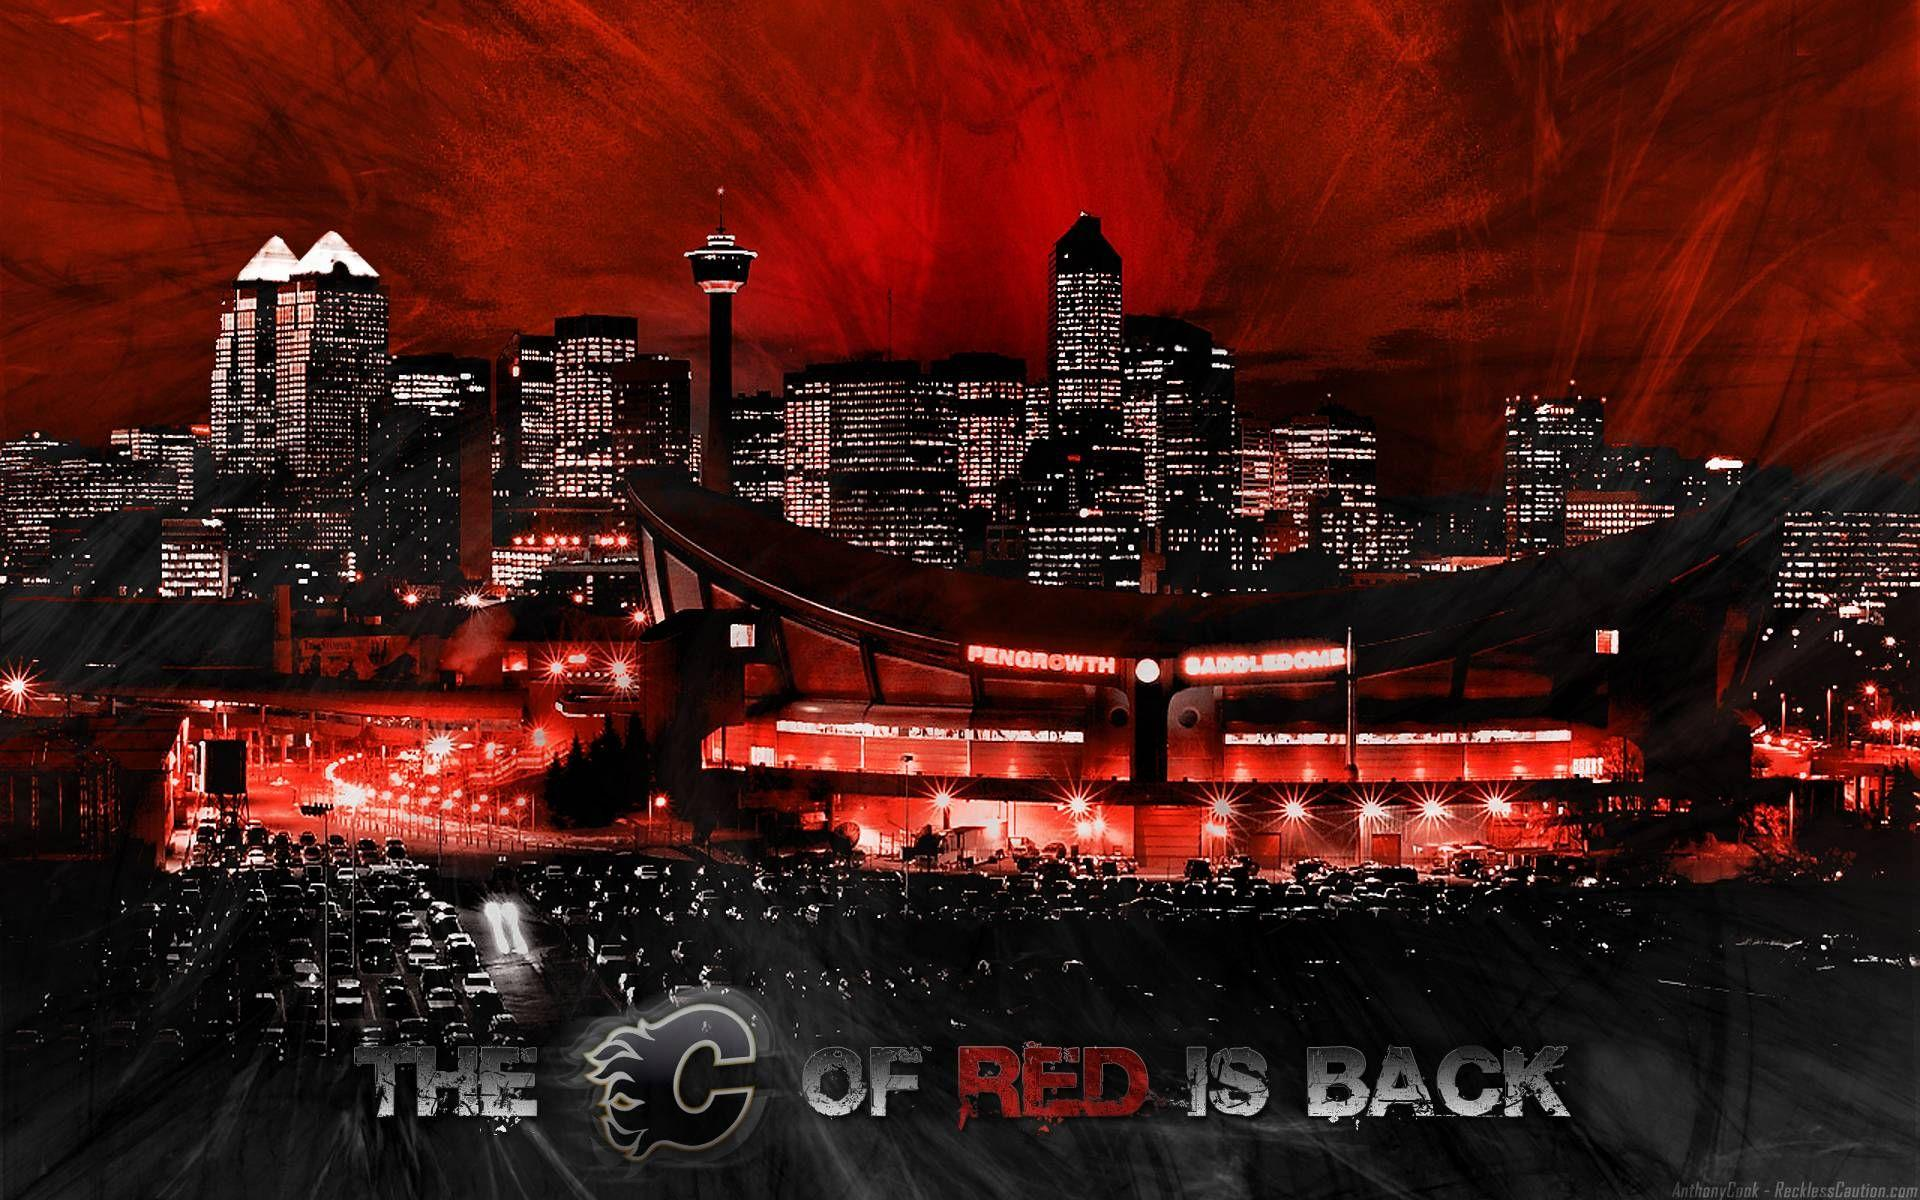 3 Calgary Flames HD Wallpapers